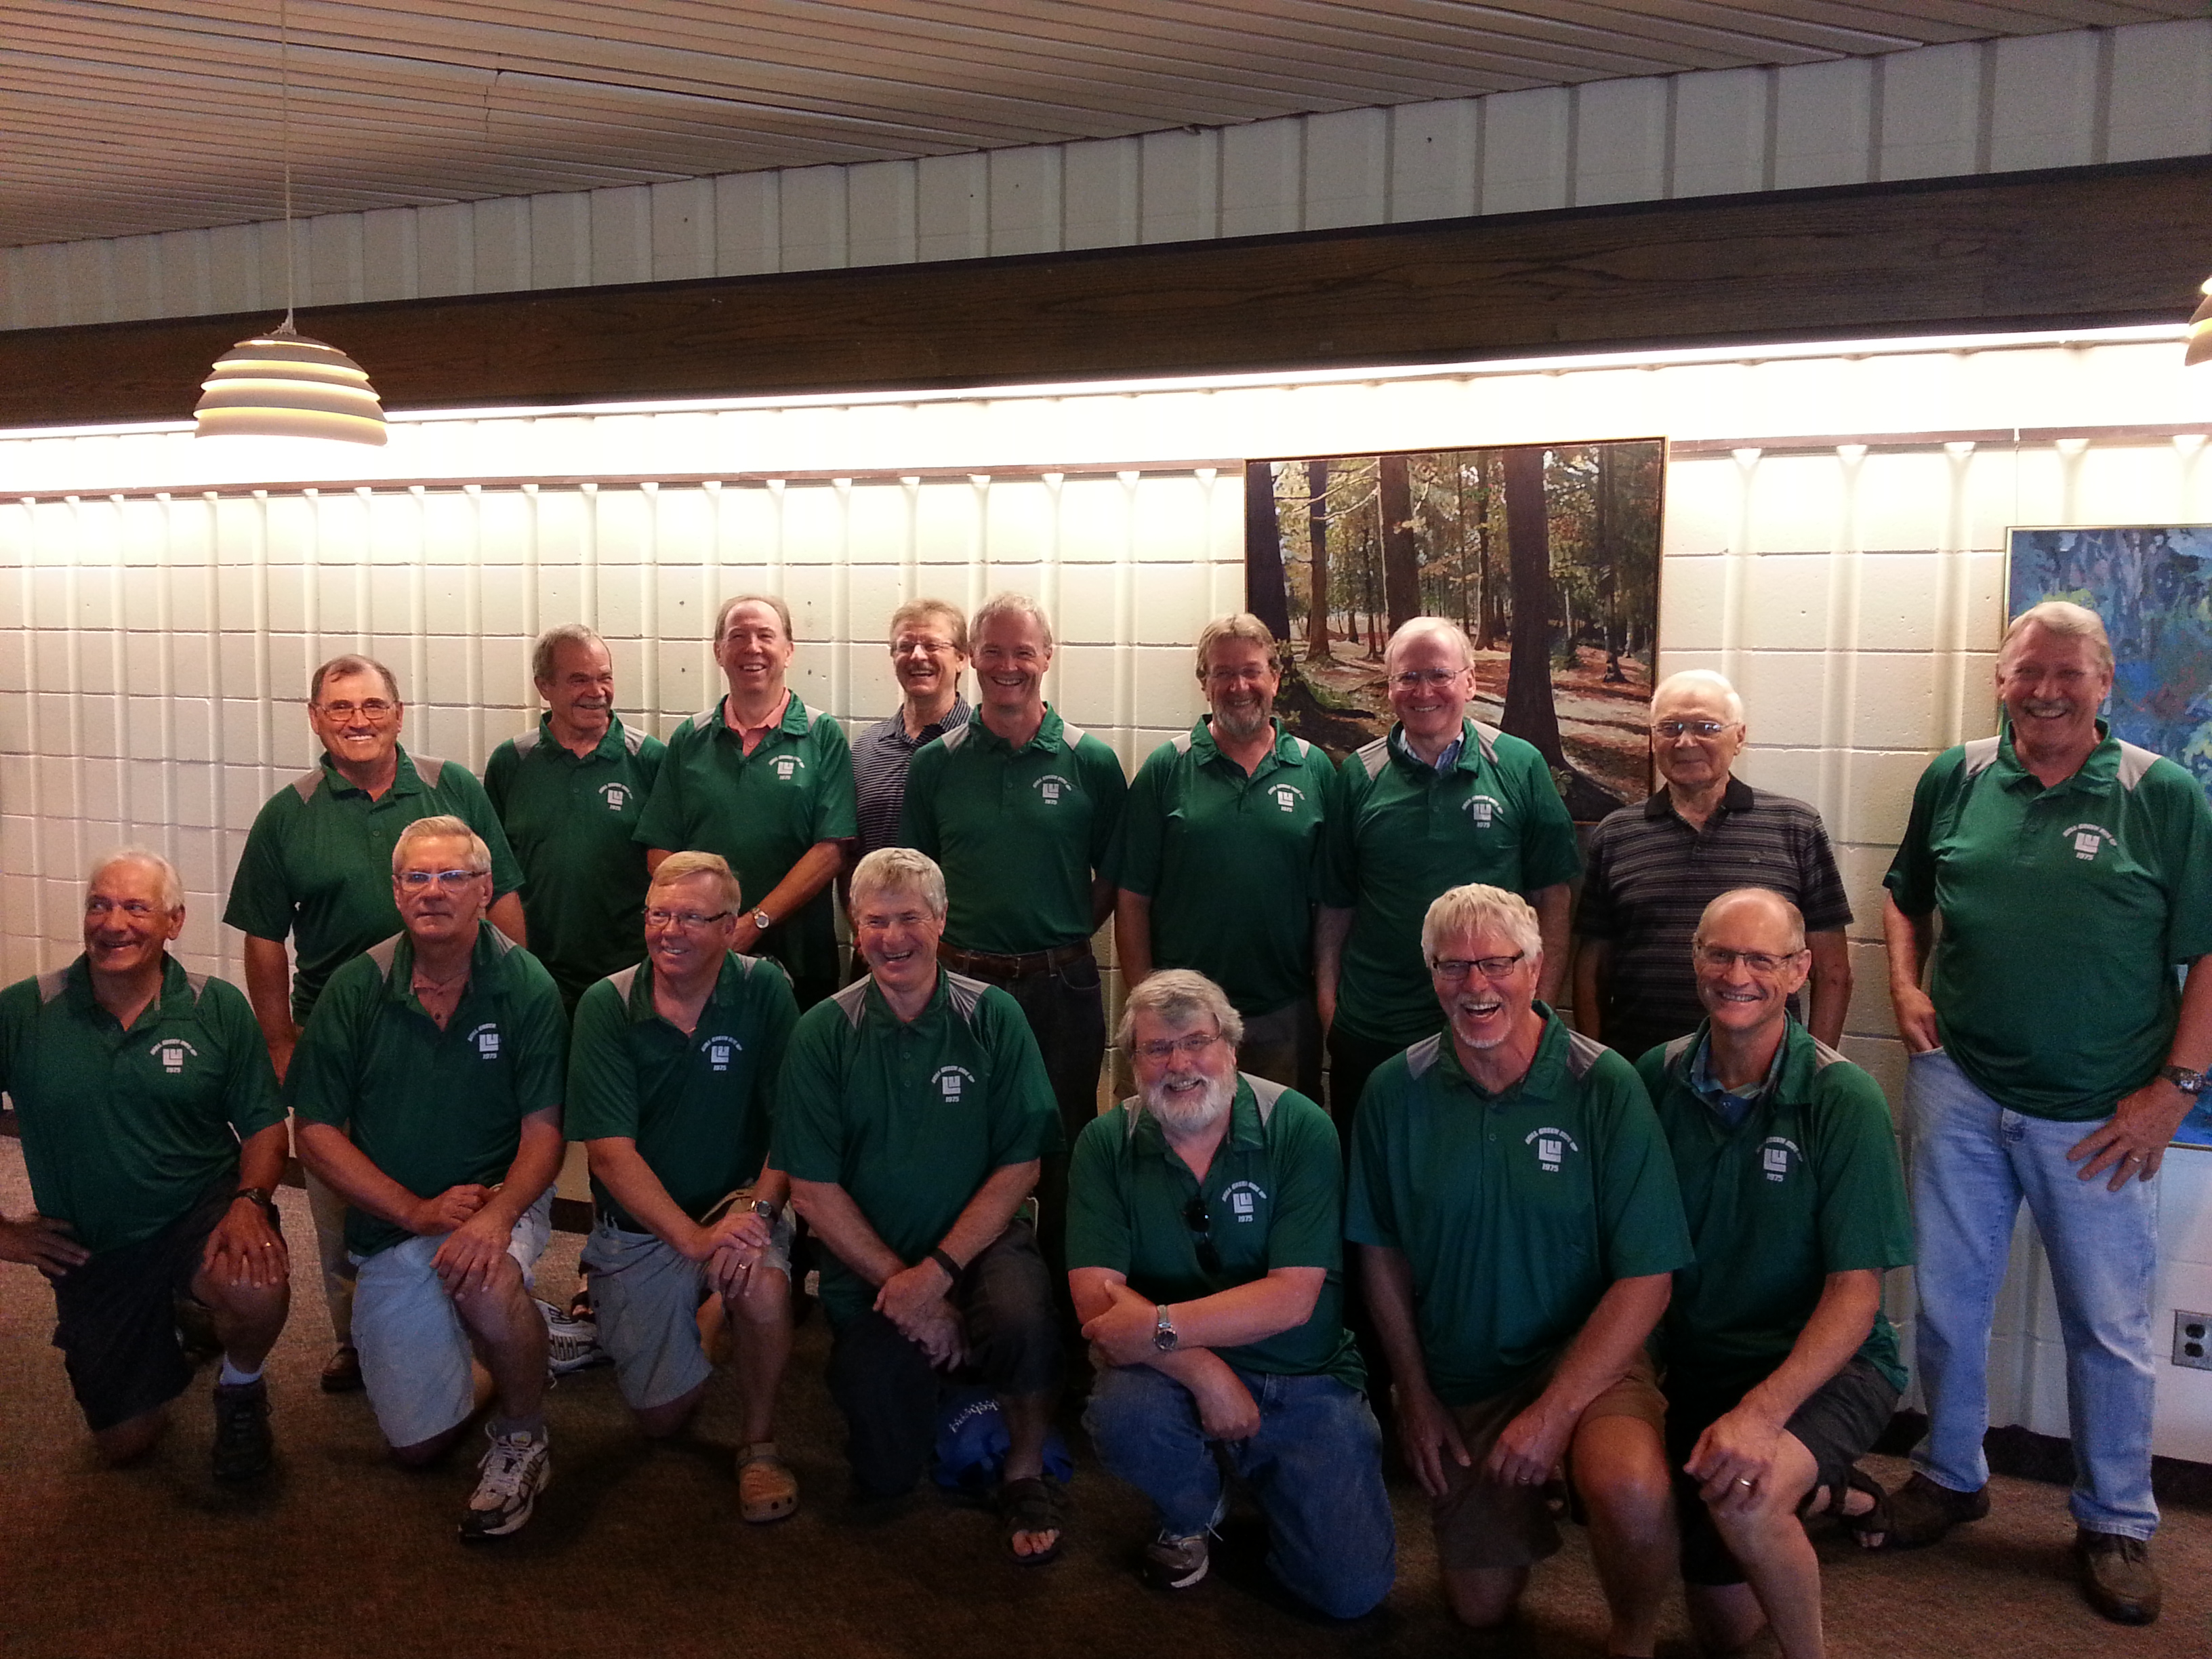 School of Forestry Reunion Class of 1975